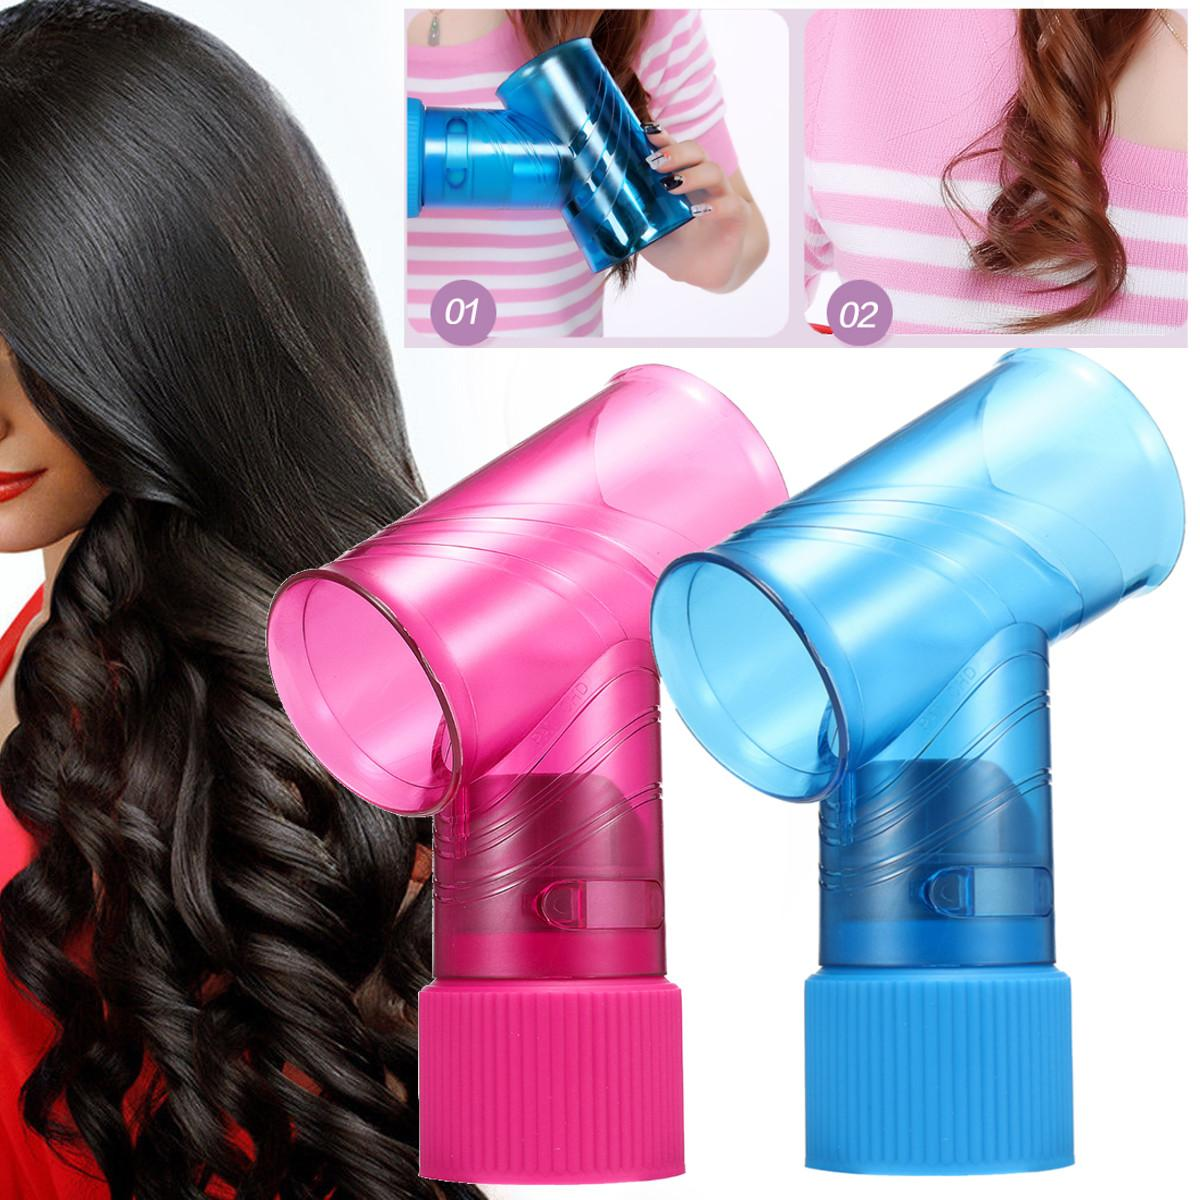 Portable Hairdressing Curly Hair Styling Magic Hood Spin Automatic Curling Dryer Hair Tools